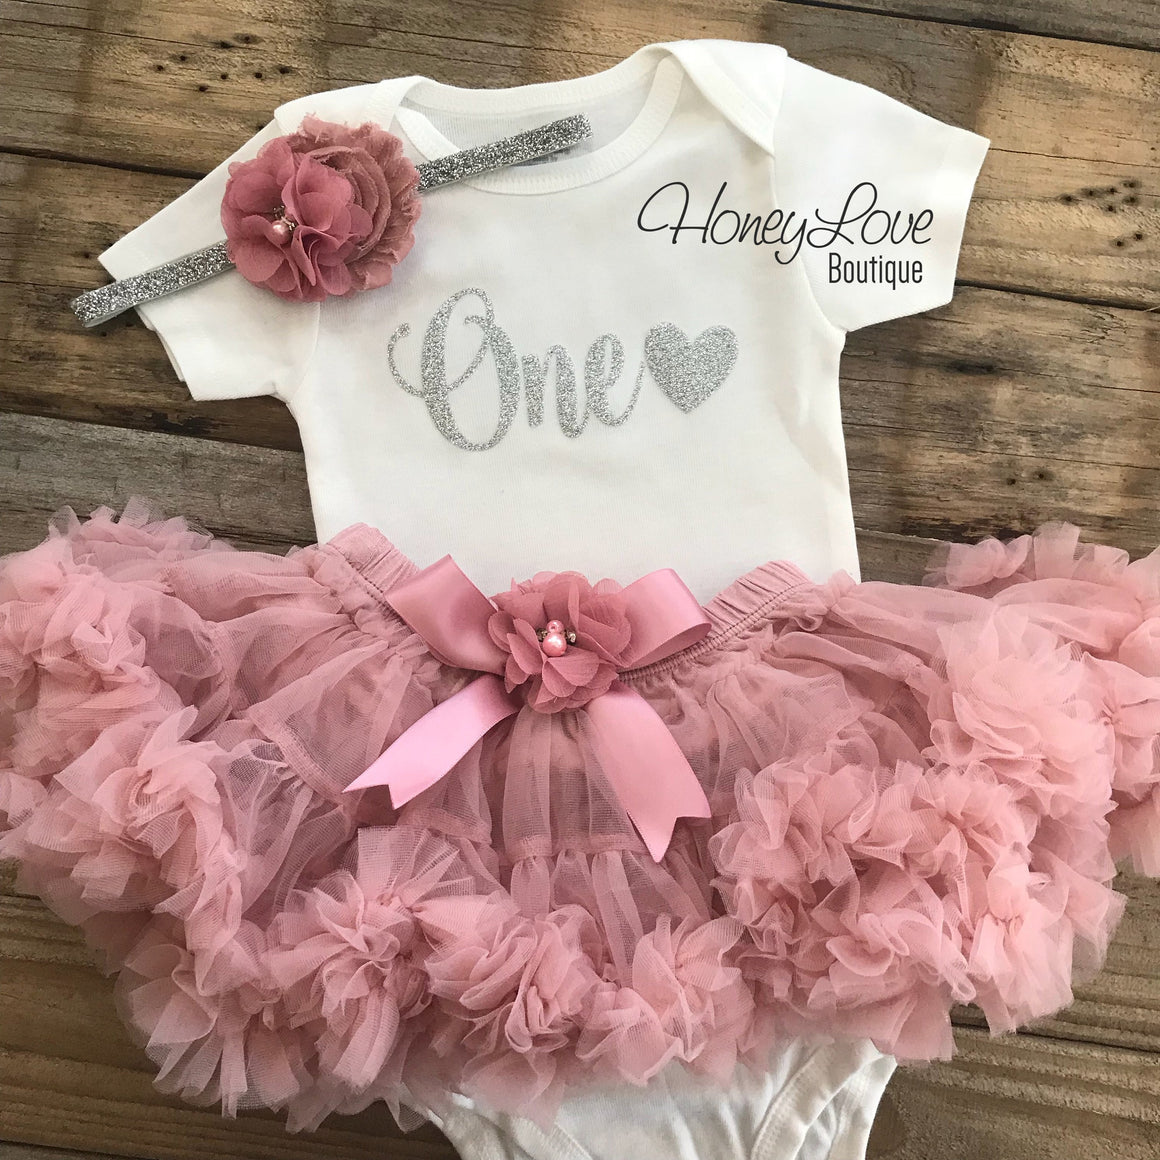 One with heart - Birthday Outfit - Vintage Pink and Silver/Gold Glitter - HoneyLoveBoutique